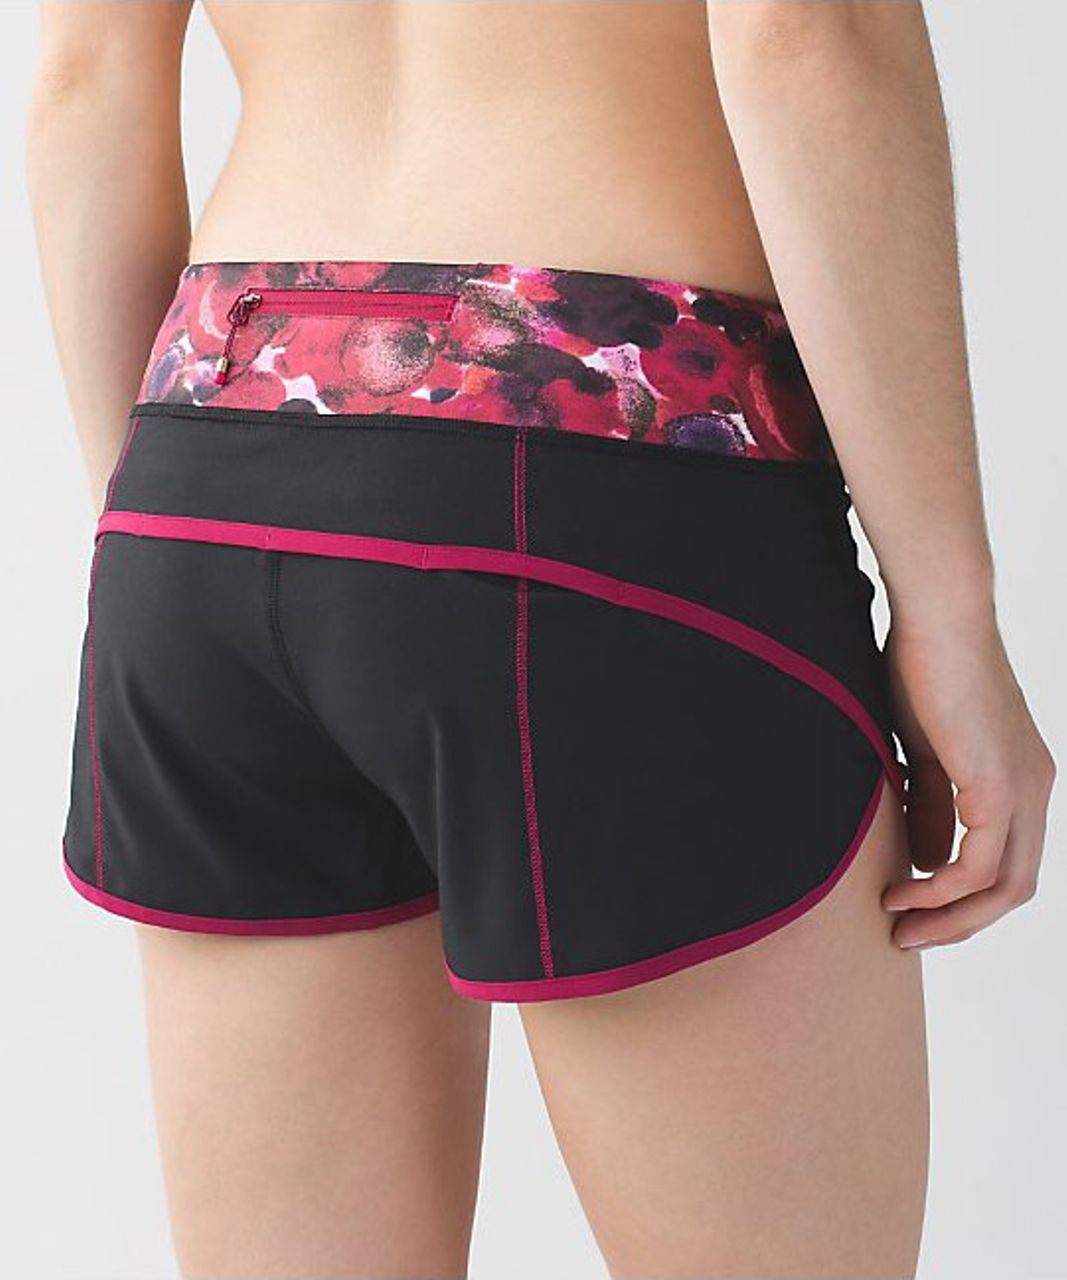 Lululemon Speed Short - Black (Poppy Petals Berry Rumble Multi Waistband/Berry Rumble Trim)